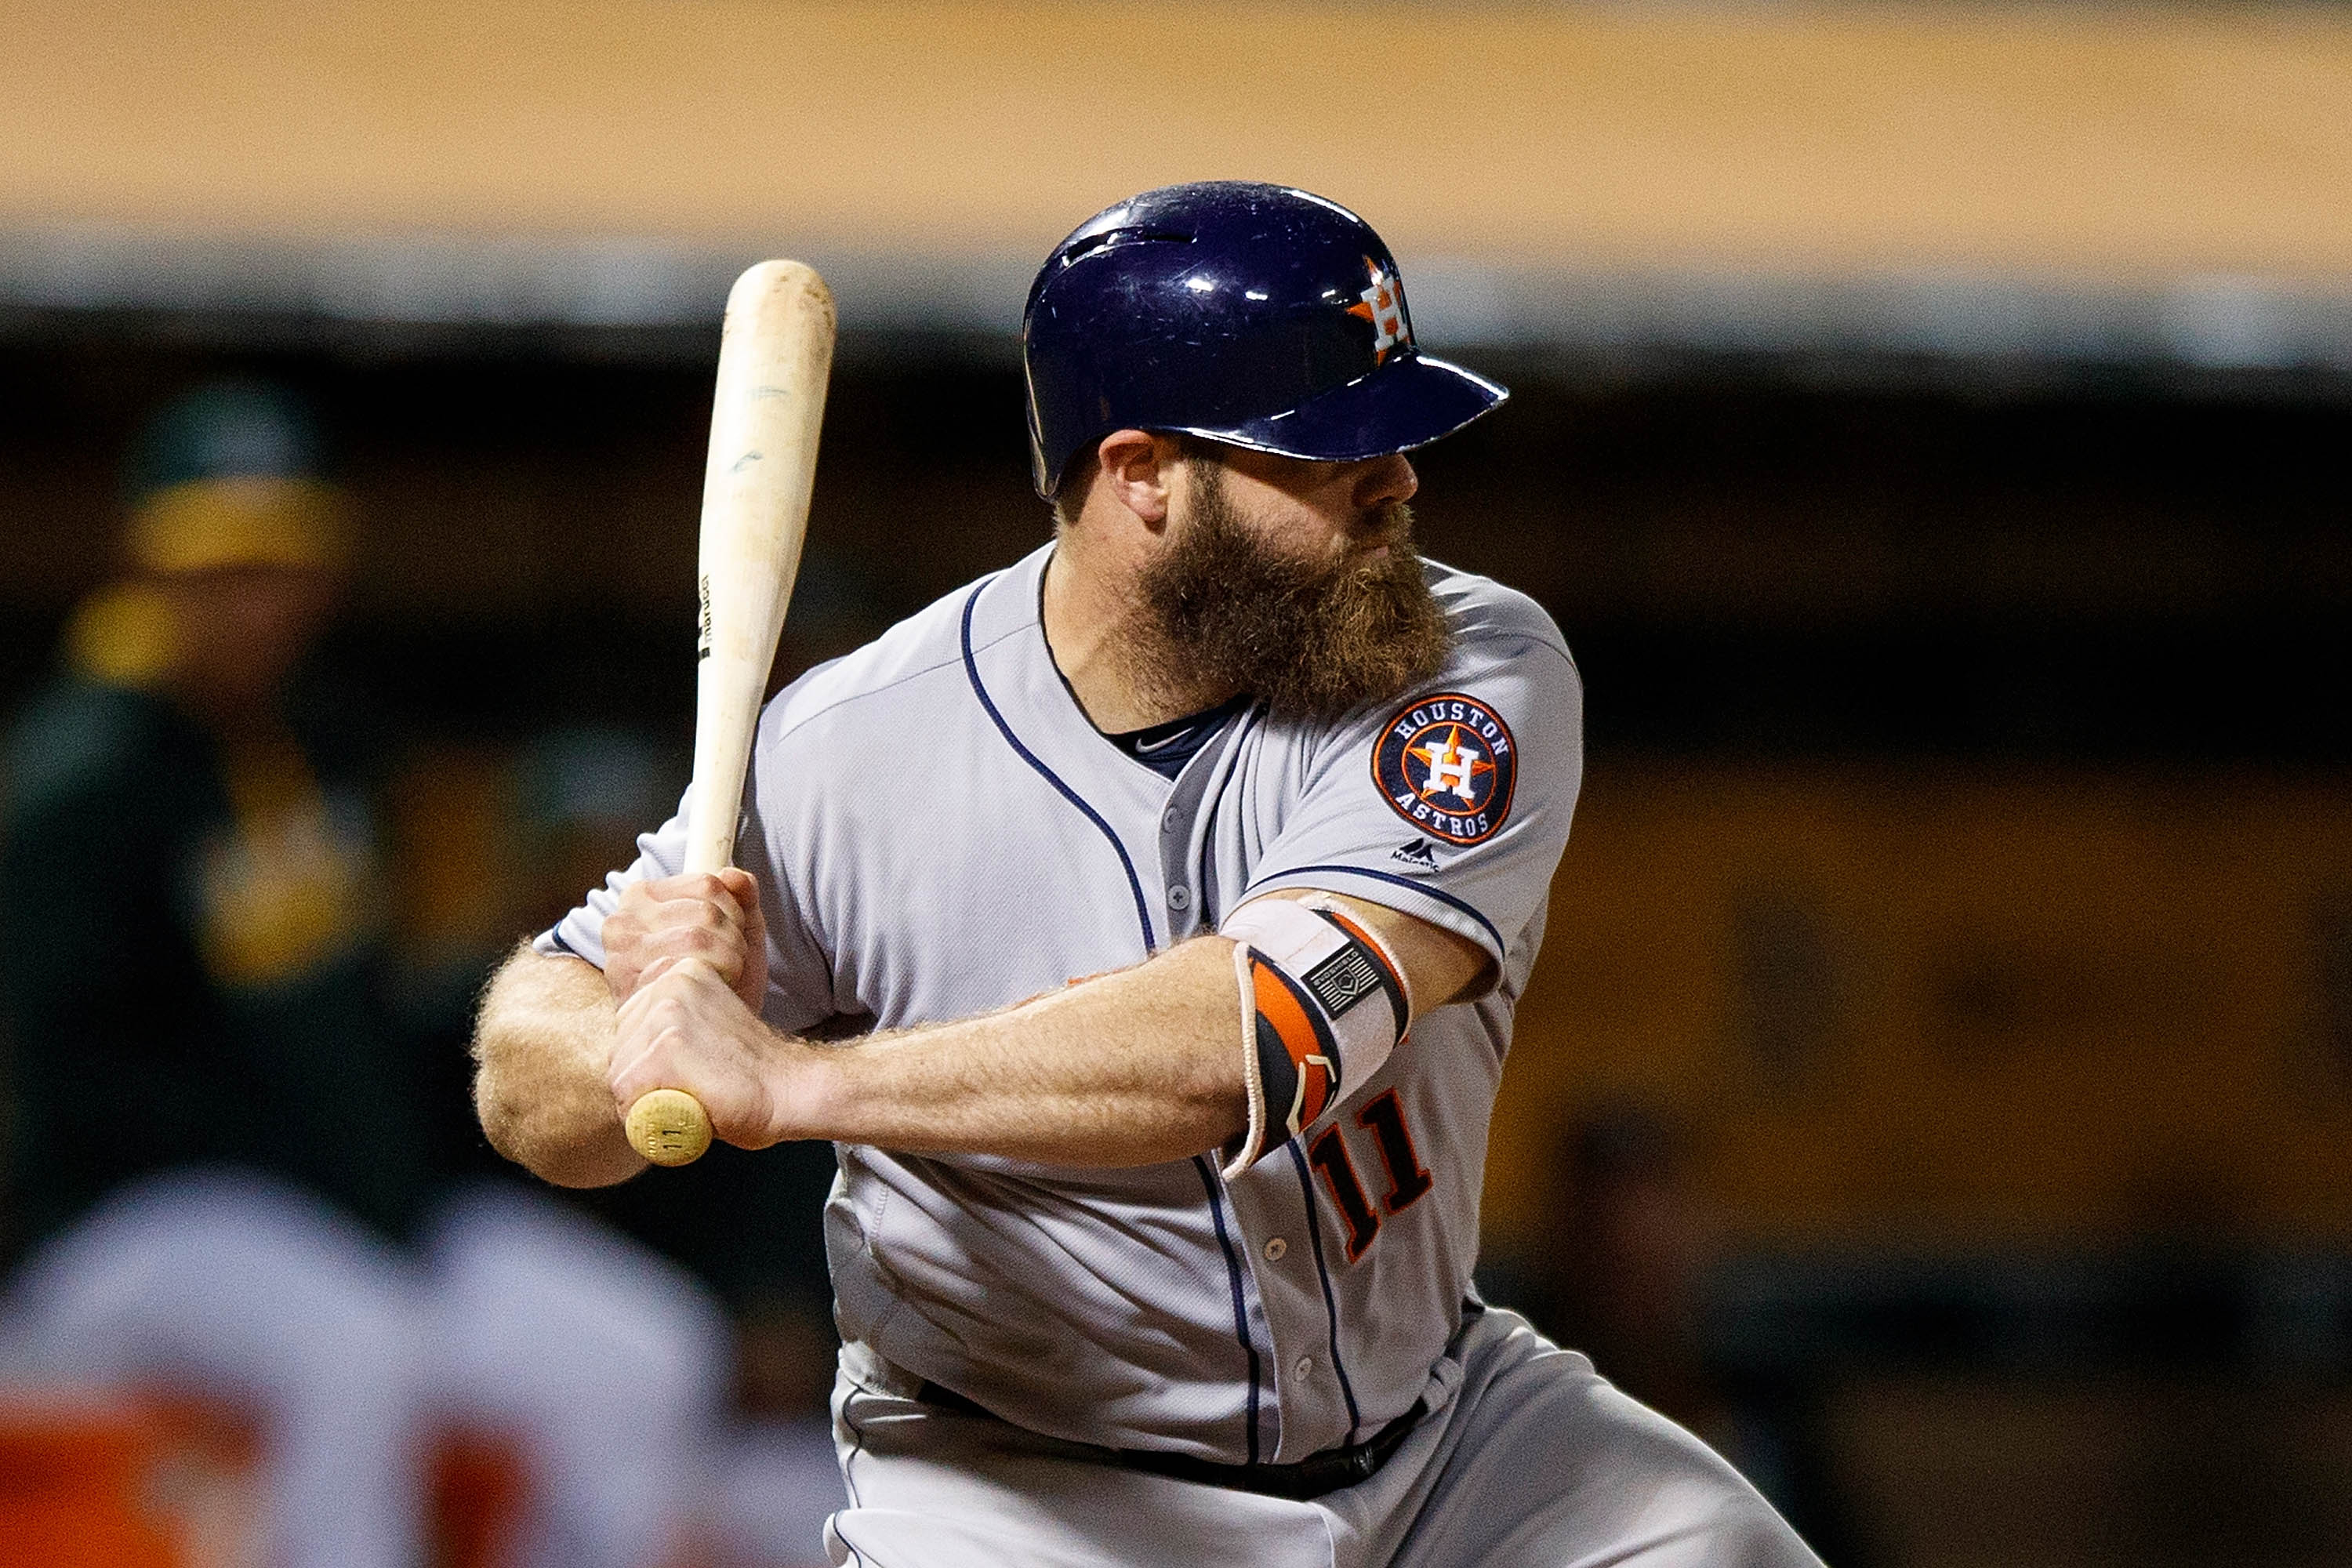 OAKLAND, CA - SEPTEMBER 20: Evan Gattis #11 of the Houston Astros at bat against the Oakland Athletics during the ninth inning at the Oakland Coliseum on September 20, 2016 in Oakland, California. The Houston Astros defeated the Oakland Athletics 2-1 in 10 innings. (Photo by Jason O. Watson/Getty Images)